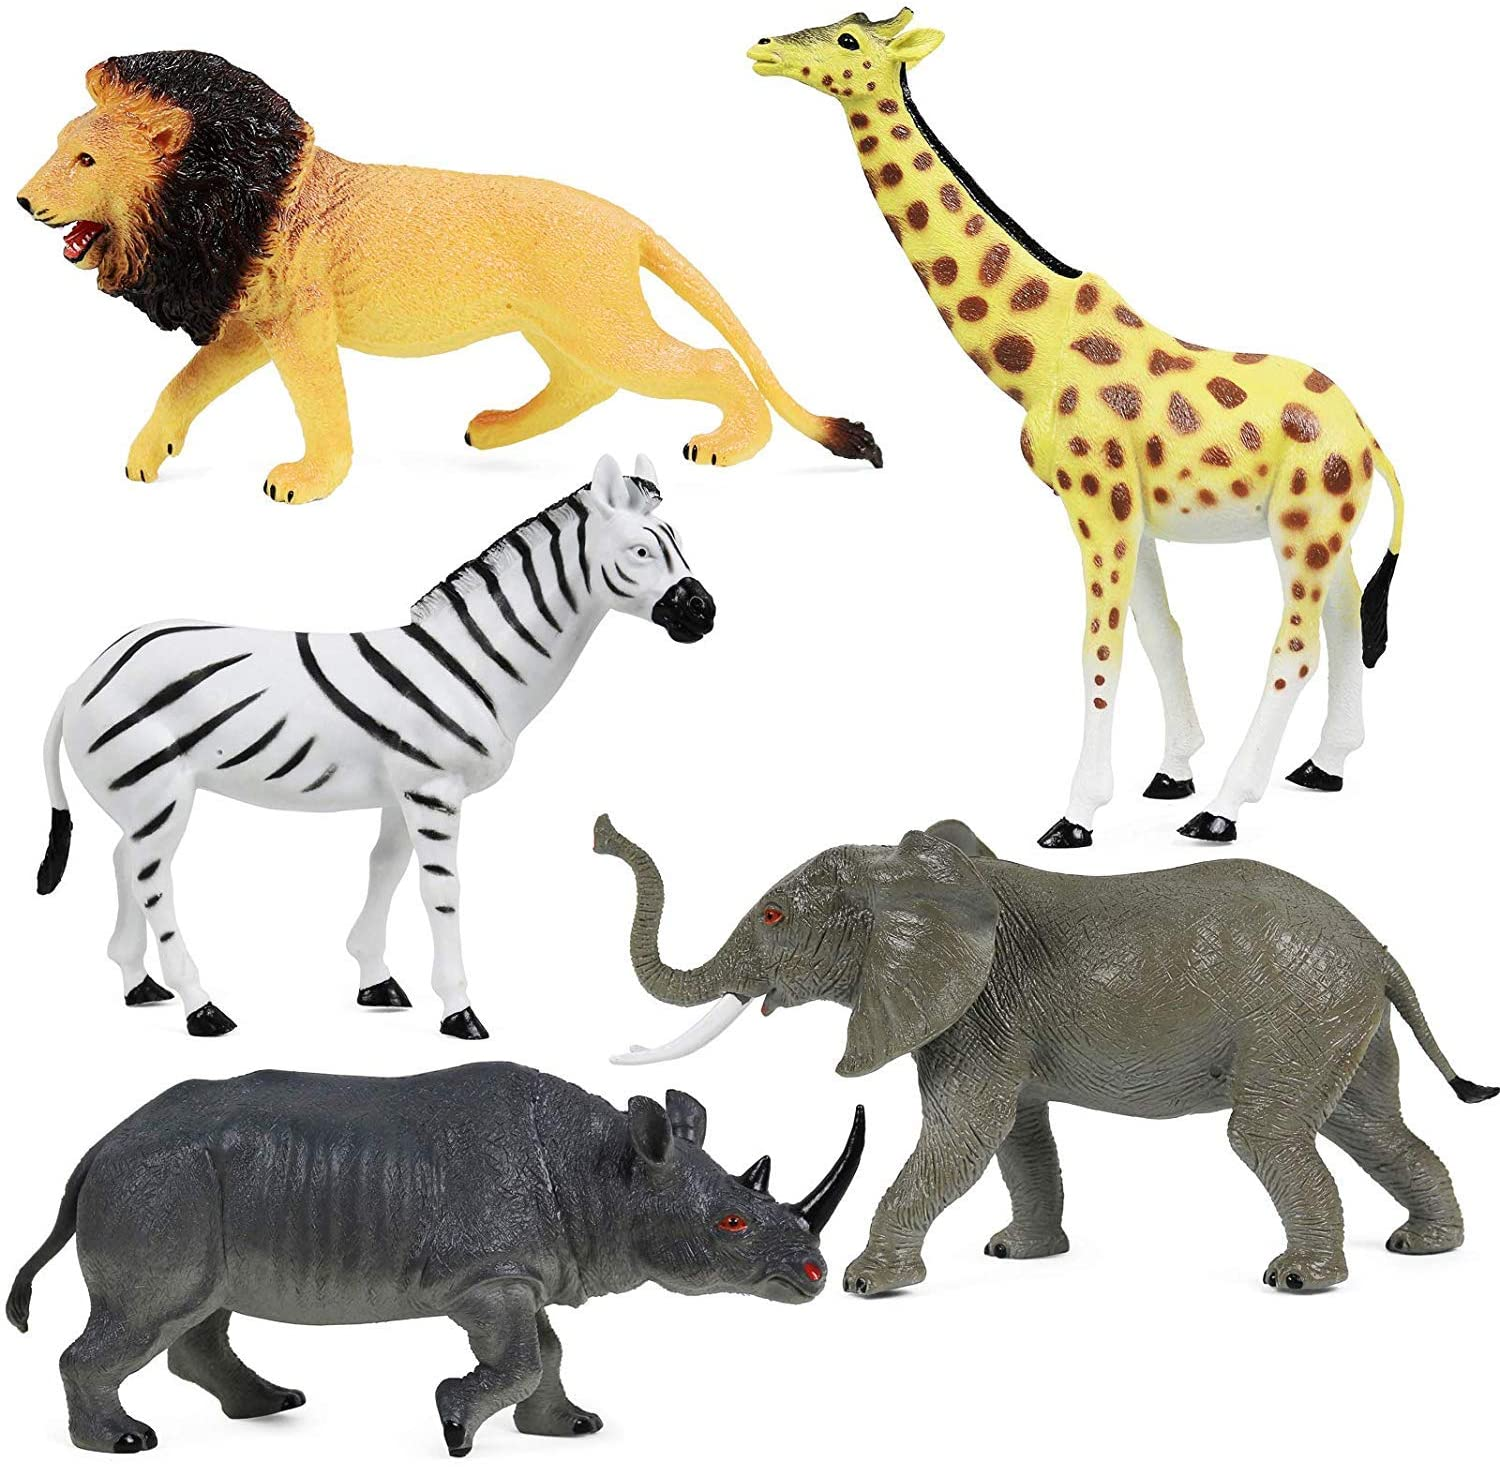 2 Packs of 12 Wild Jungle Small Animal Figurine Assortment Set